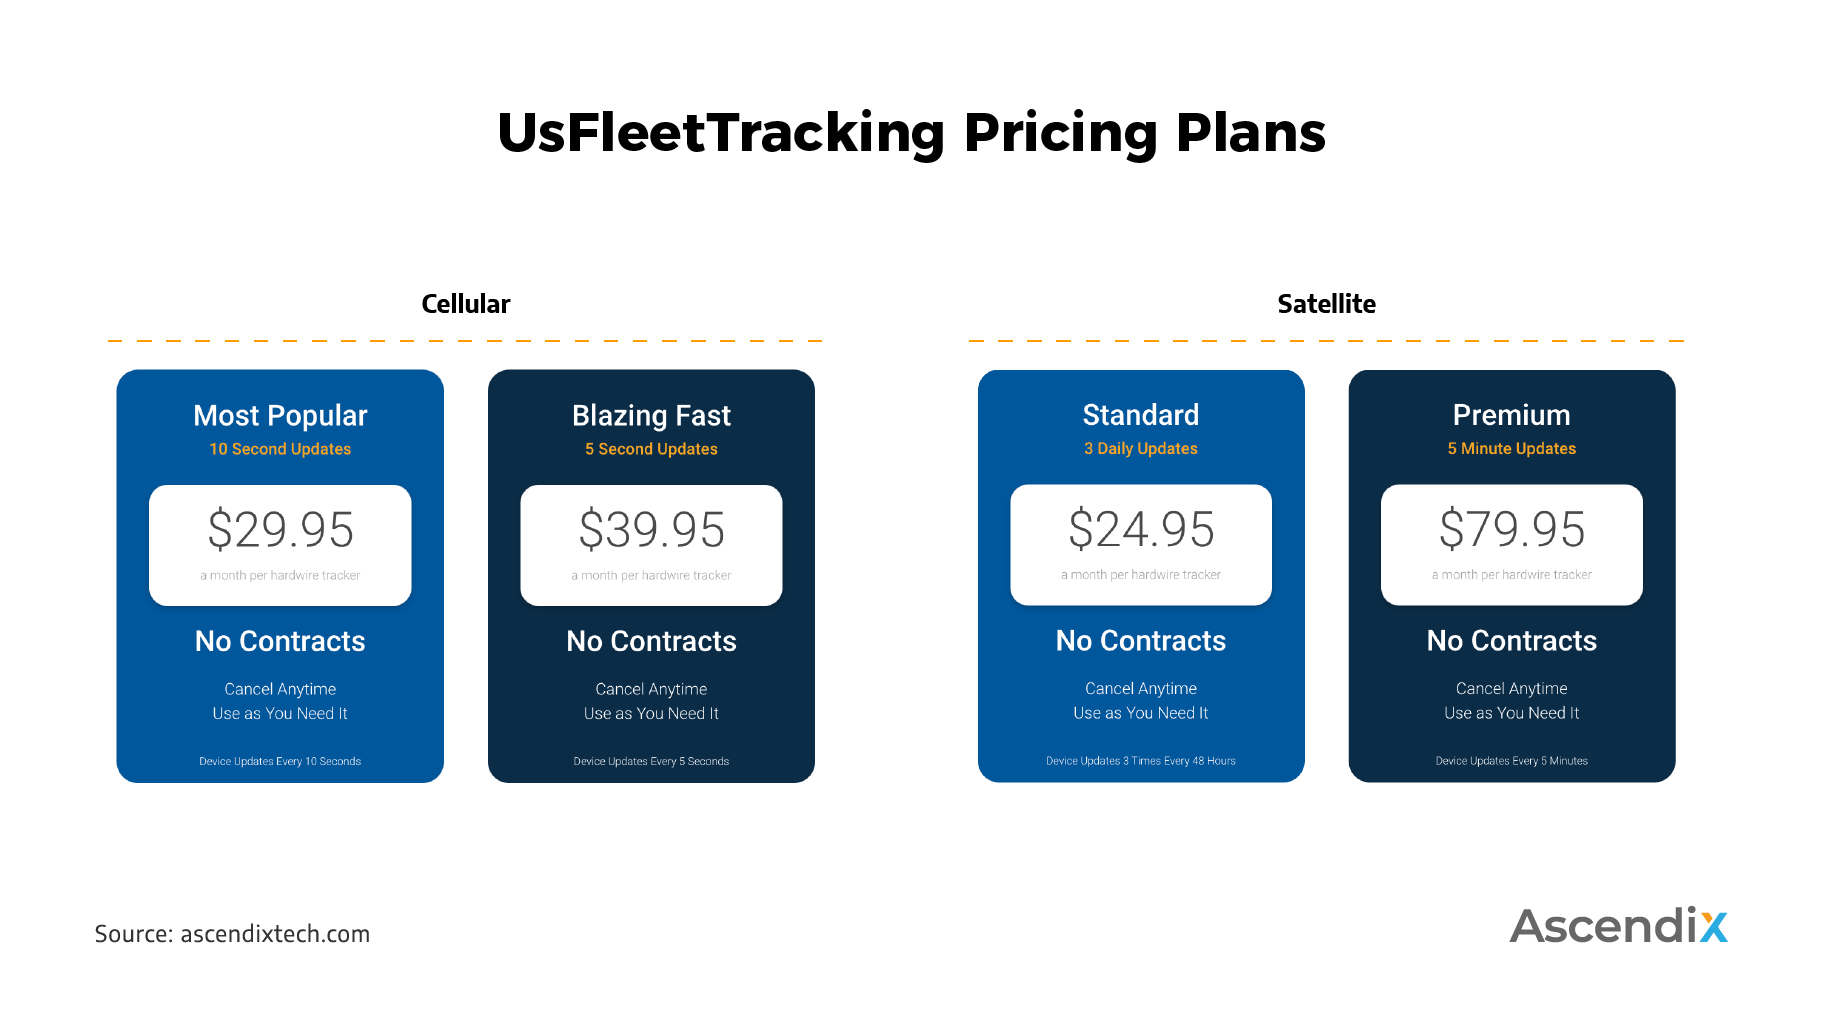 UsFleetTracking Pricing Plans